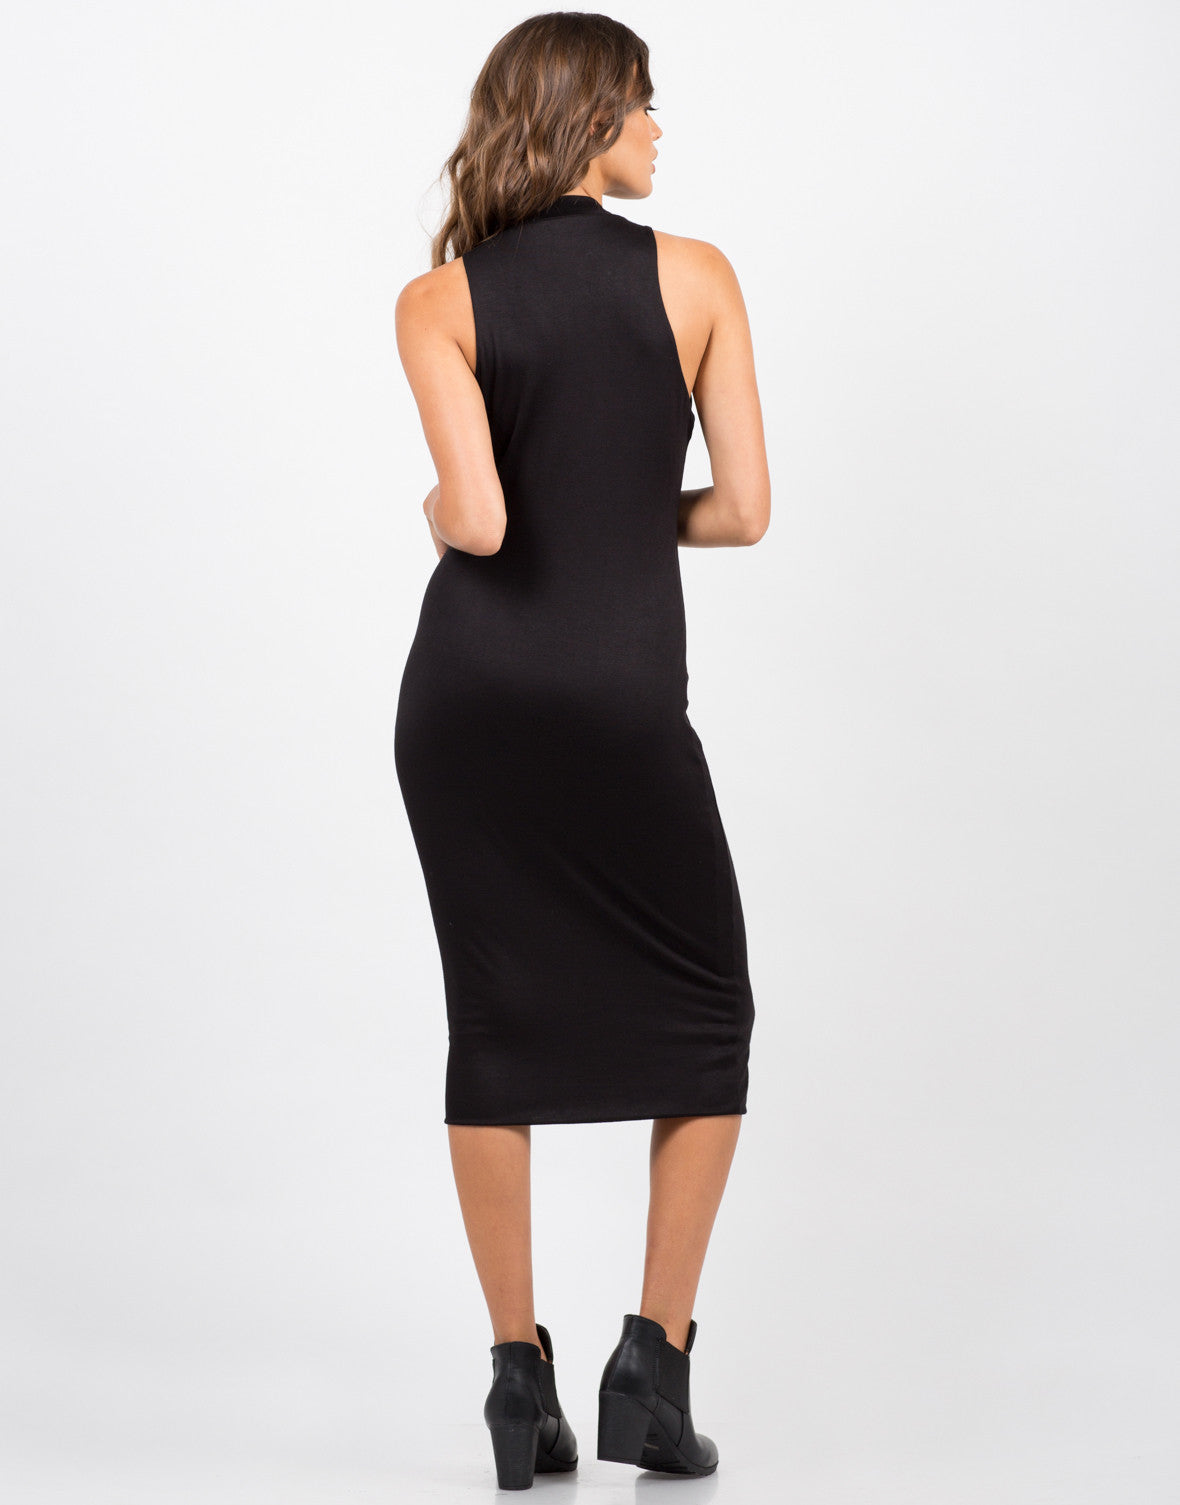 Back View of High Neck Body Con Dress - Black